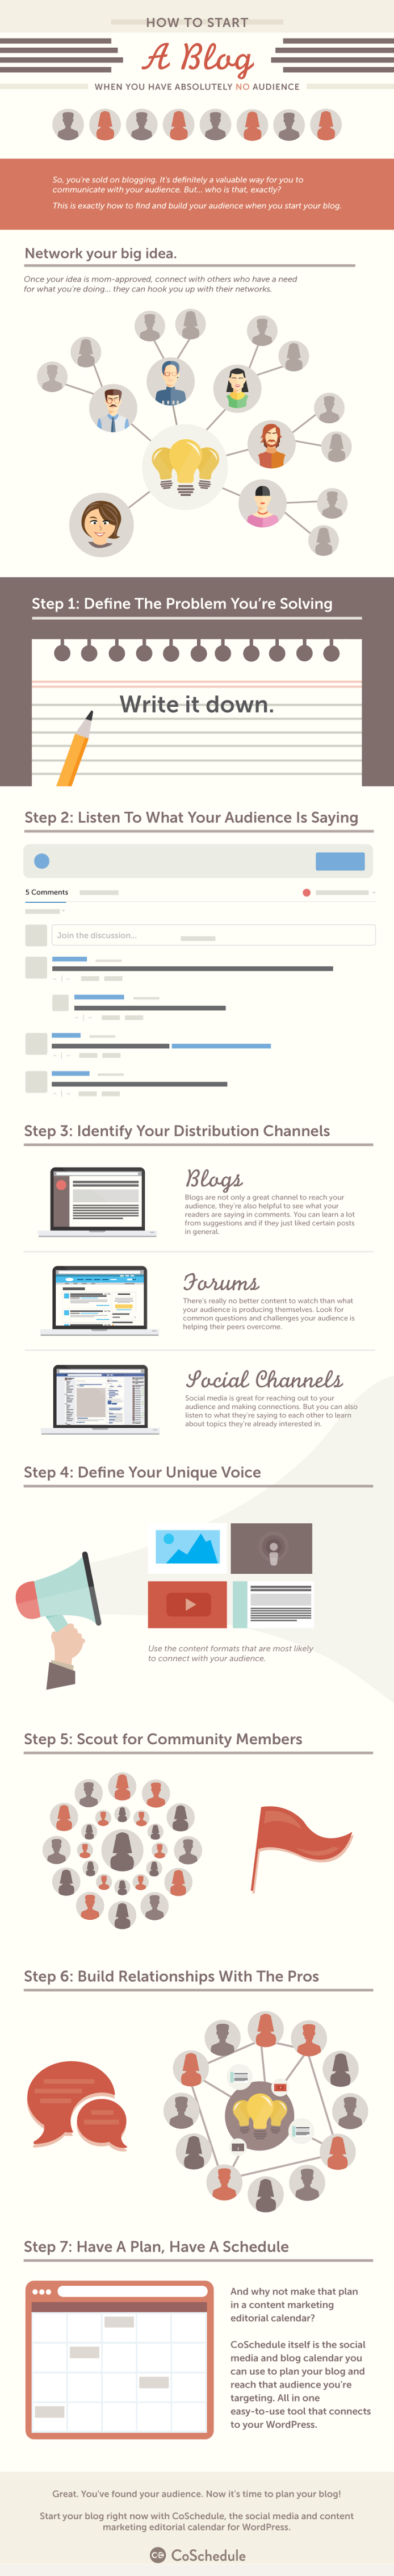 How To Start A Blog When You Have Absolutely No Audience - infographic